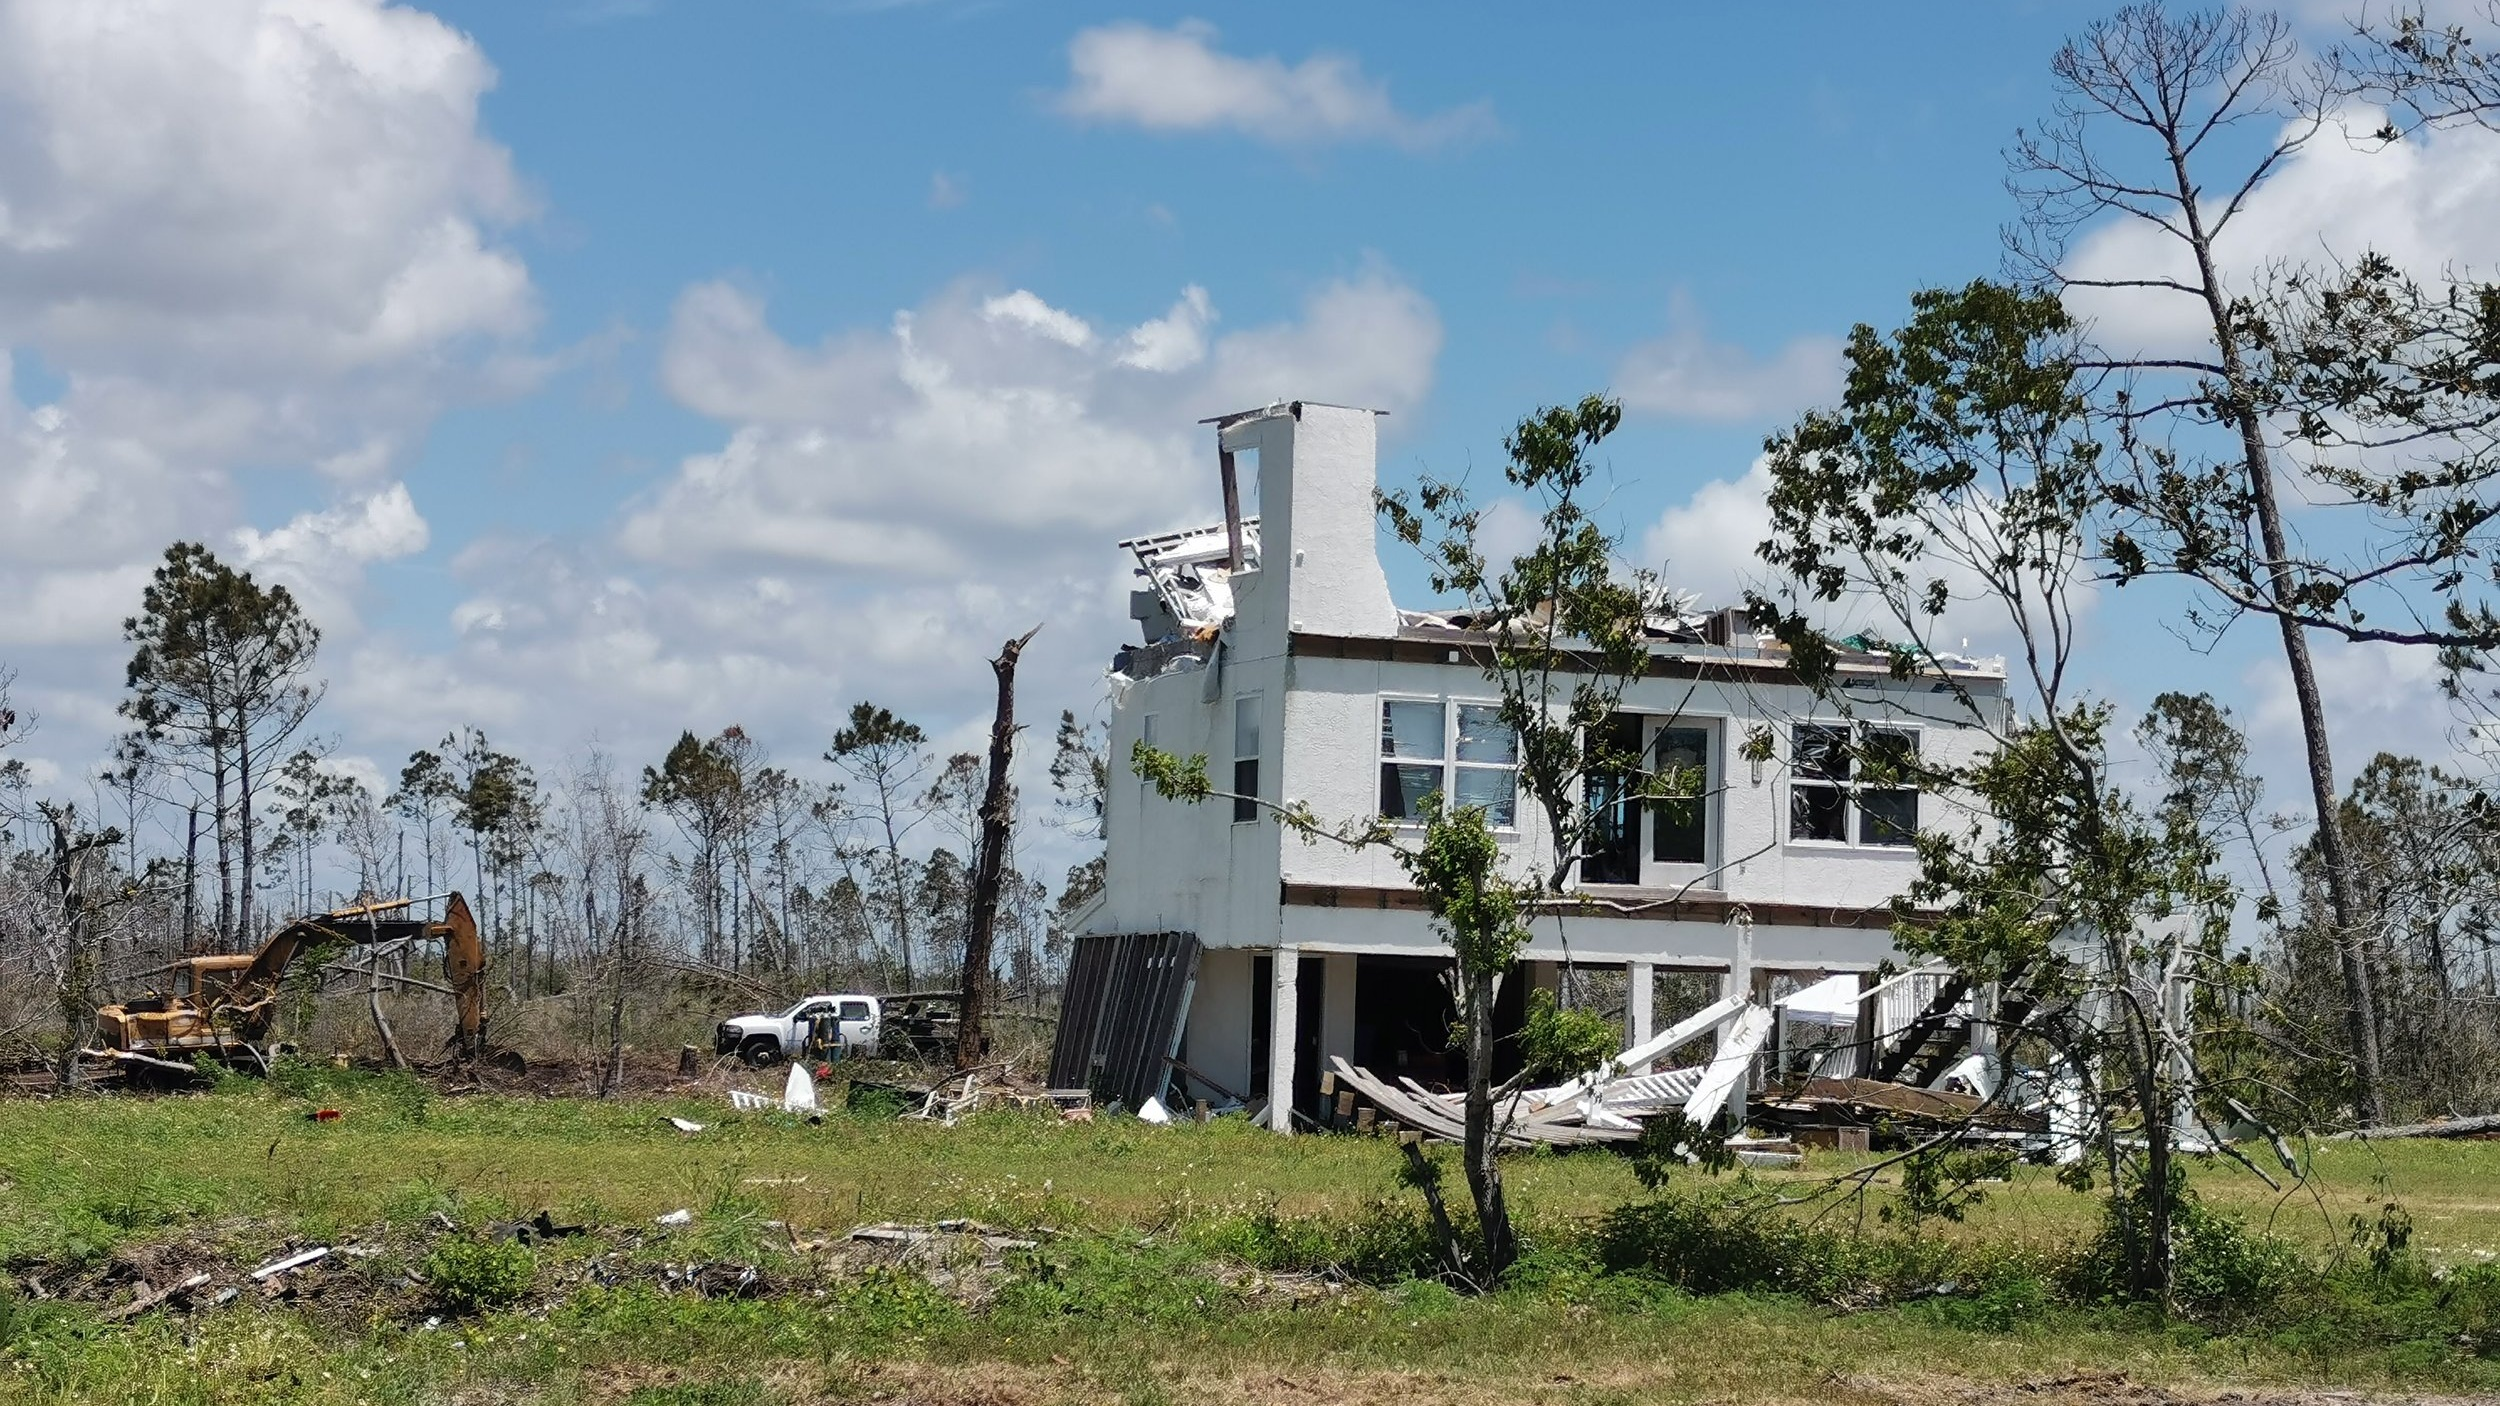 The hurricane damage in Mexico Beach is extensive